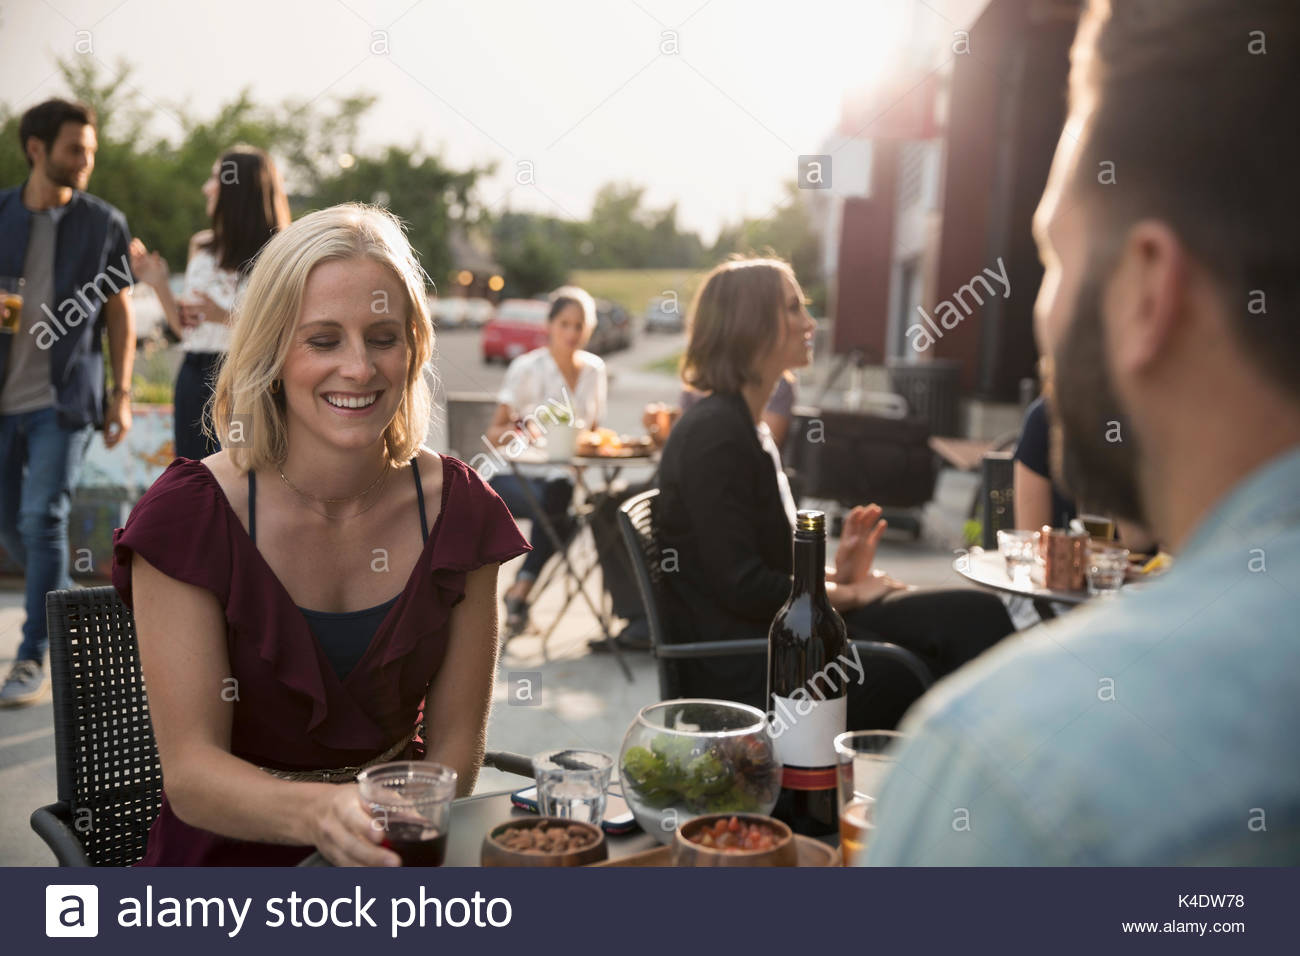 Smiling woman drinking wine avec boyfriend at sidewalk cafe Photo Stock